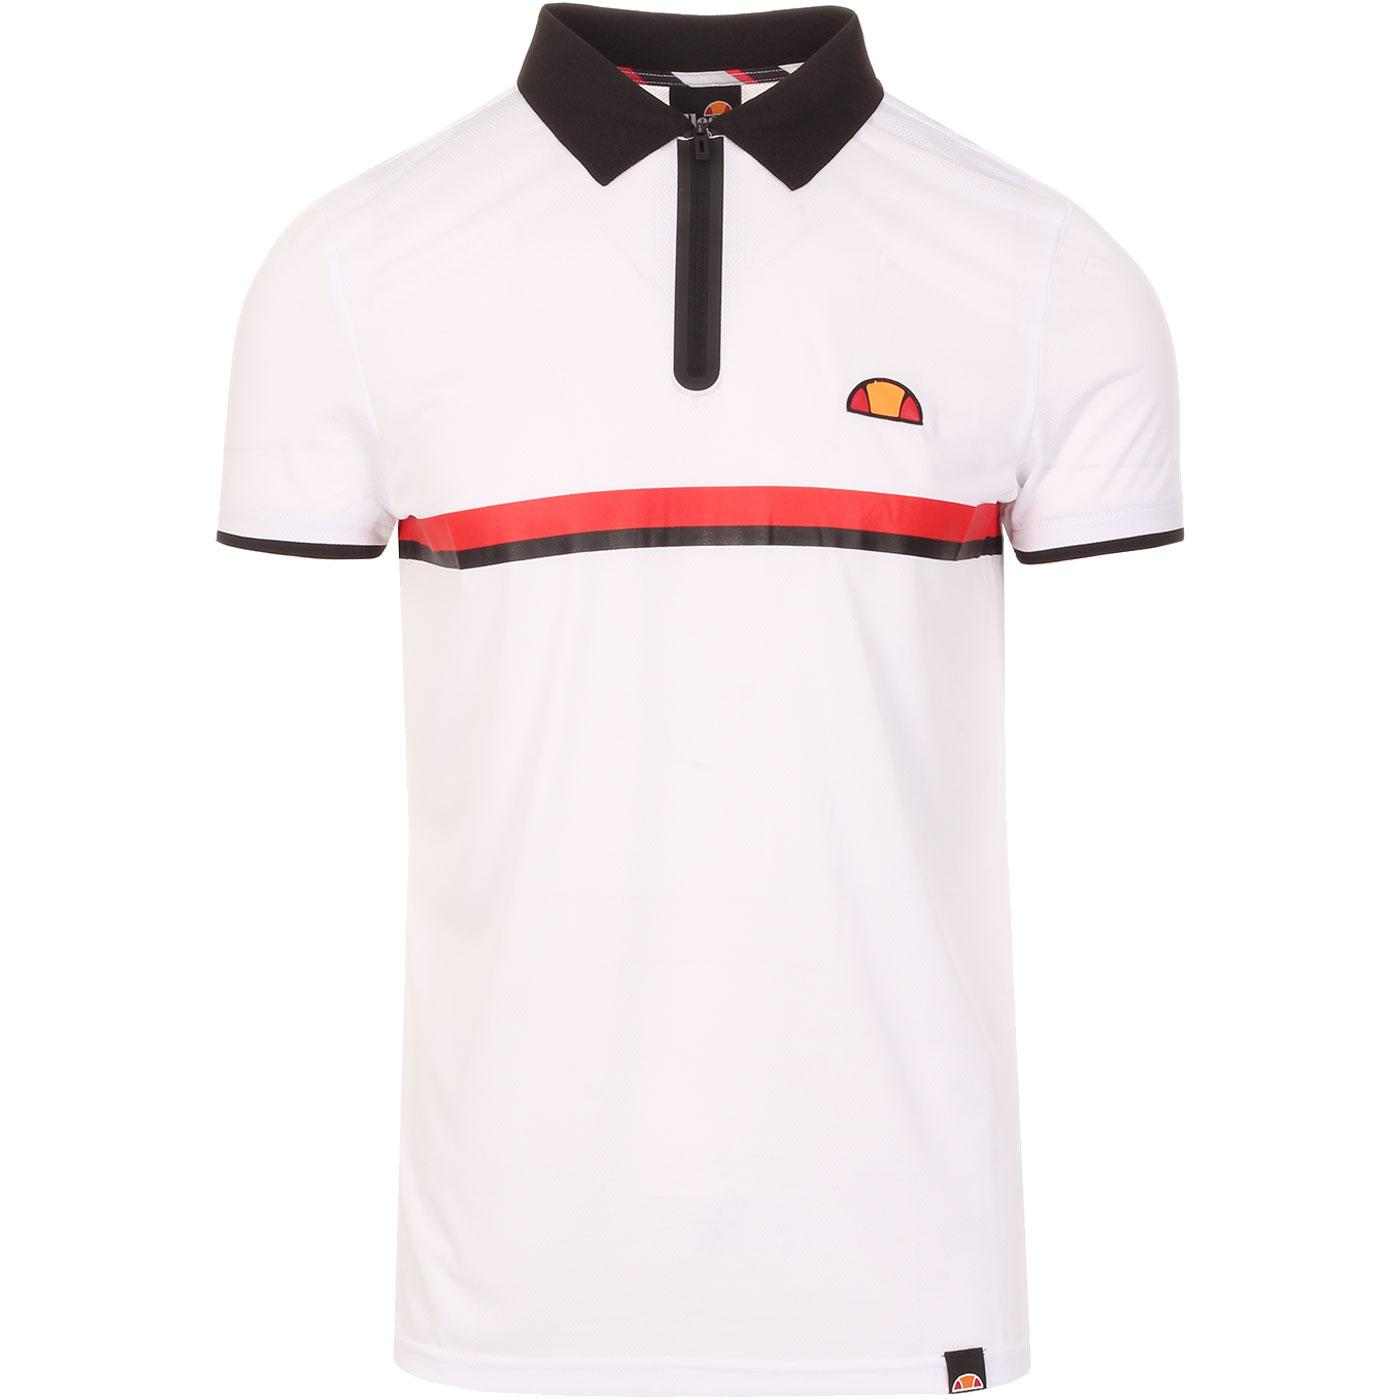 Serve ELLESSE Mens Retro Lightweight Tennis Polo